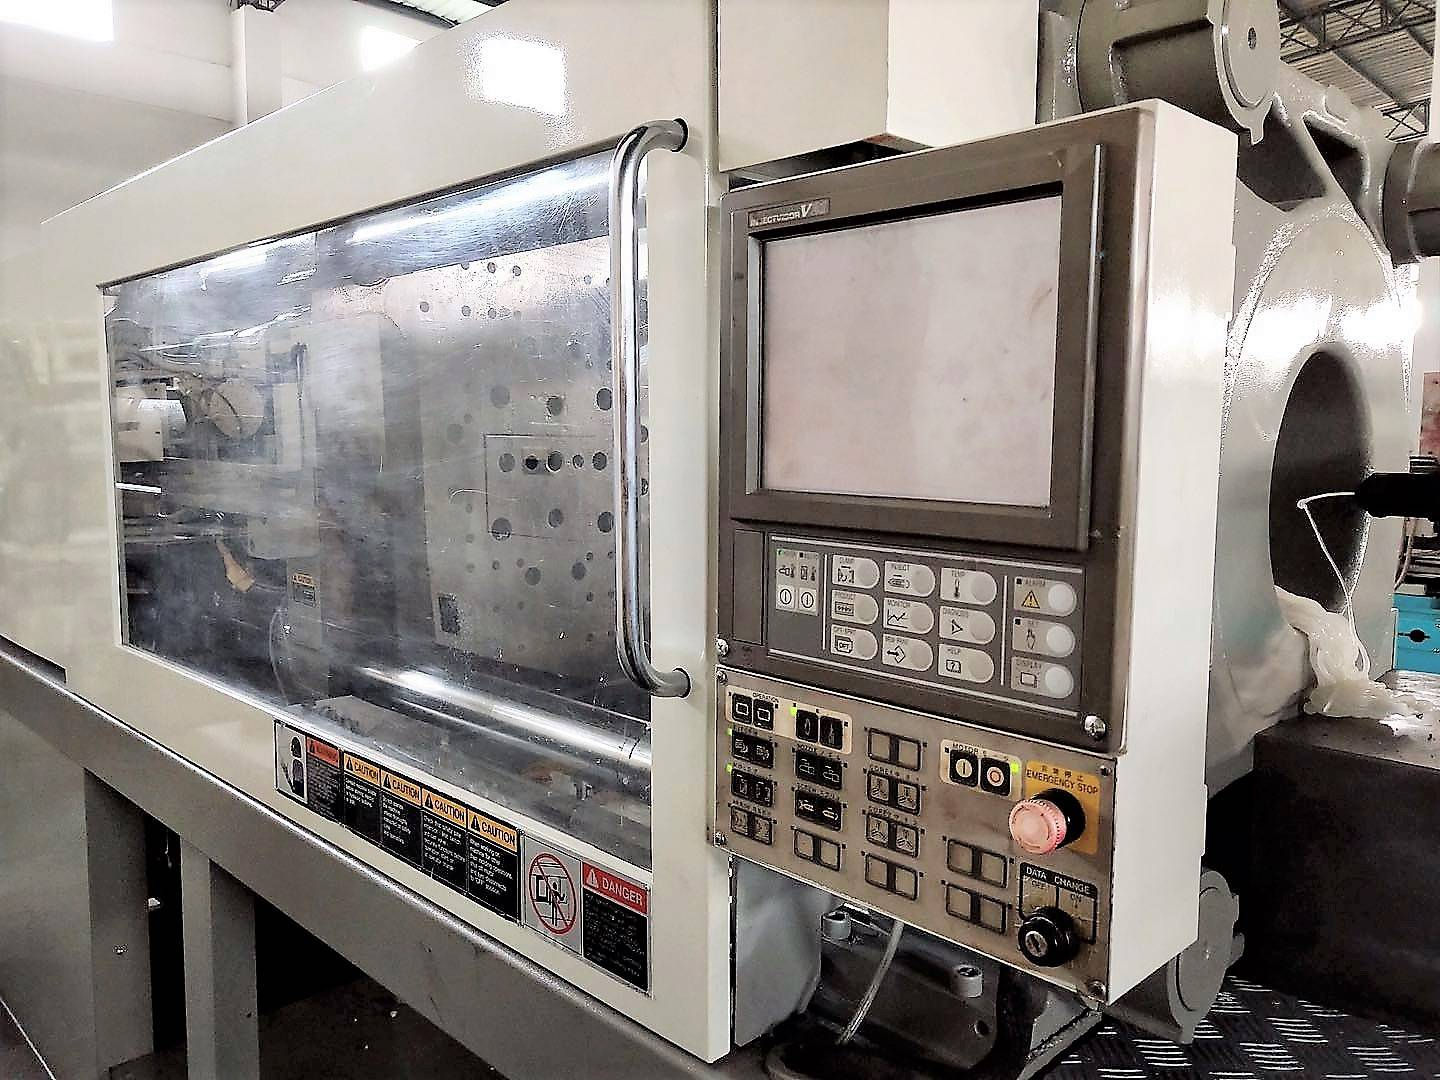 Toshiba 220t IS220GN ( V21 Control) used Injection Molding Machine